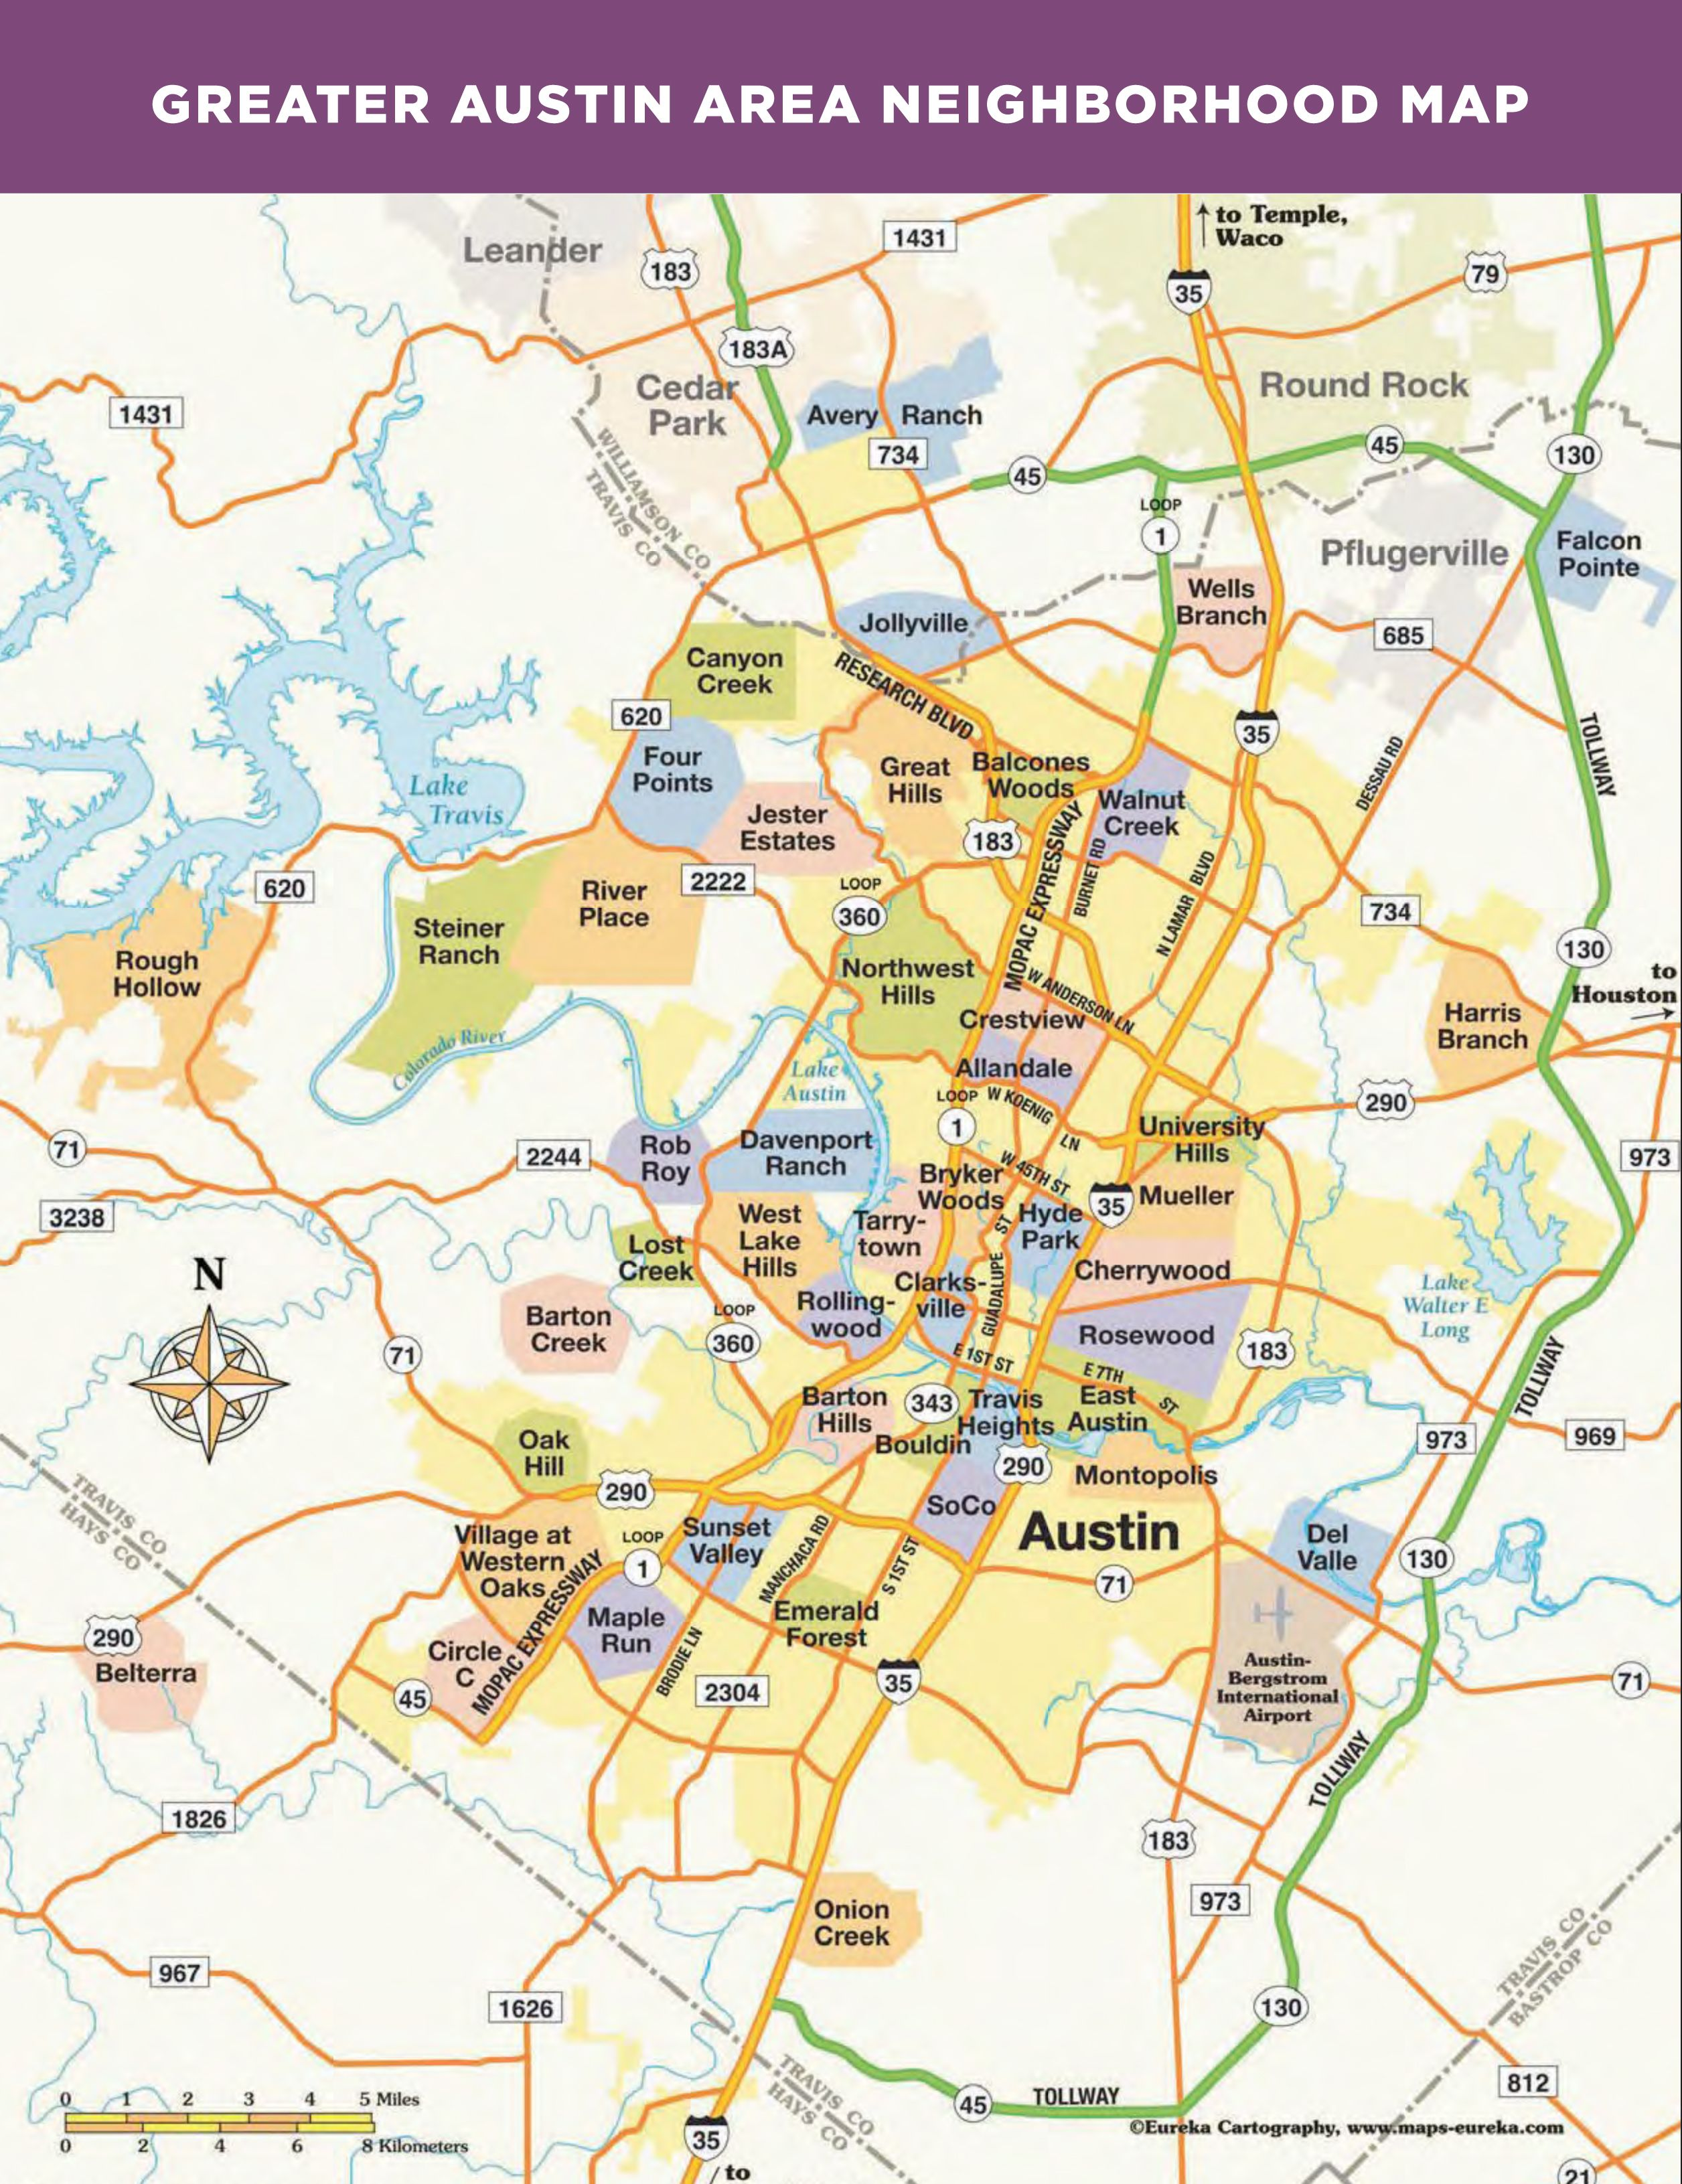 austin tx neighborhood map Greater Austin Area Neighborhood Map Austin Map The austin tx neighborhood map